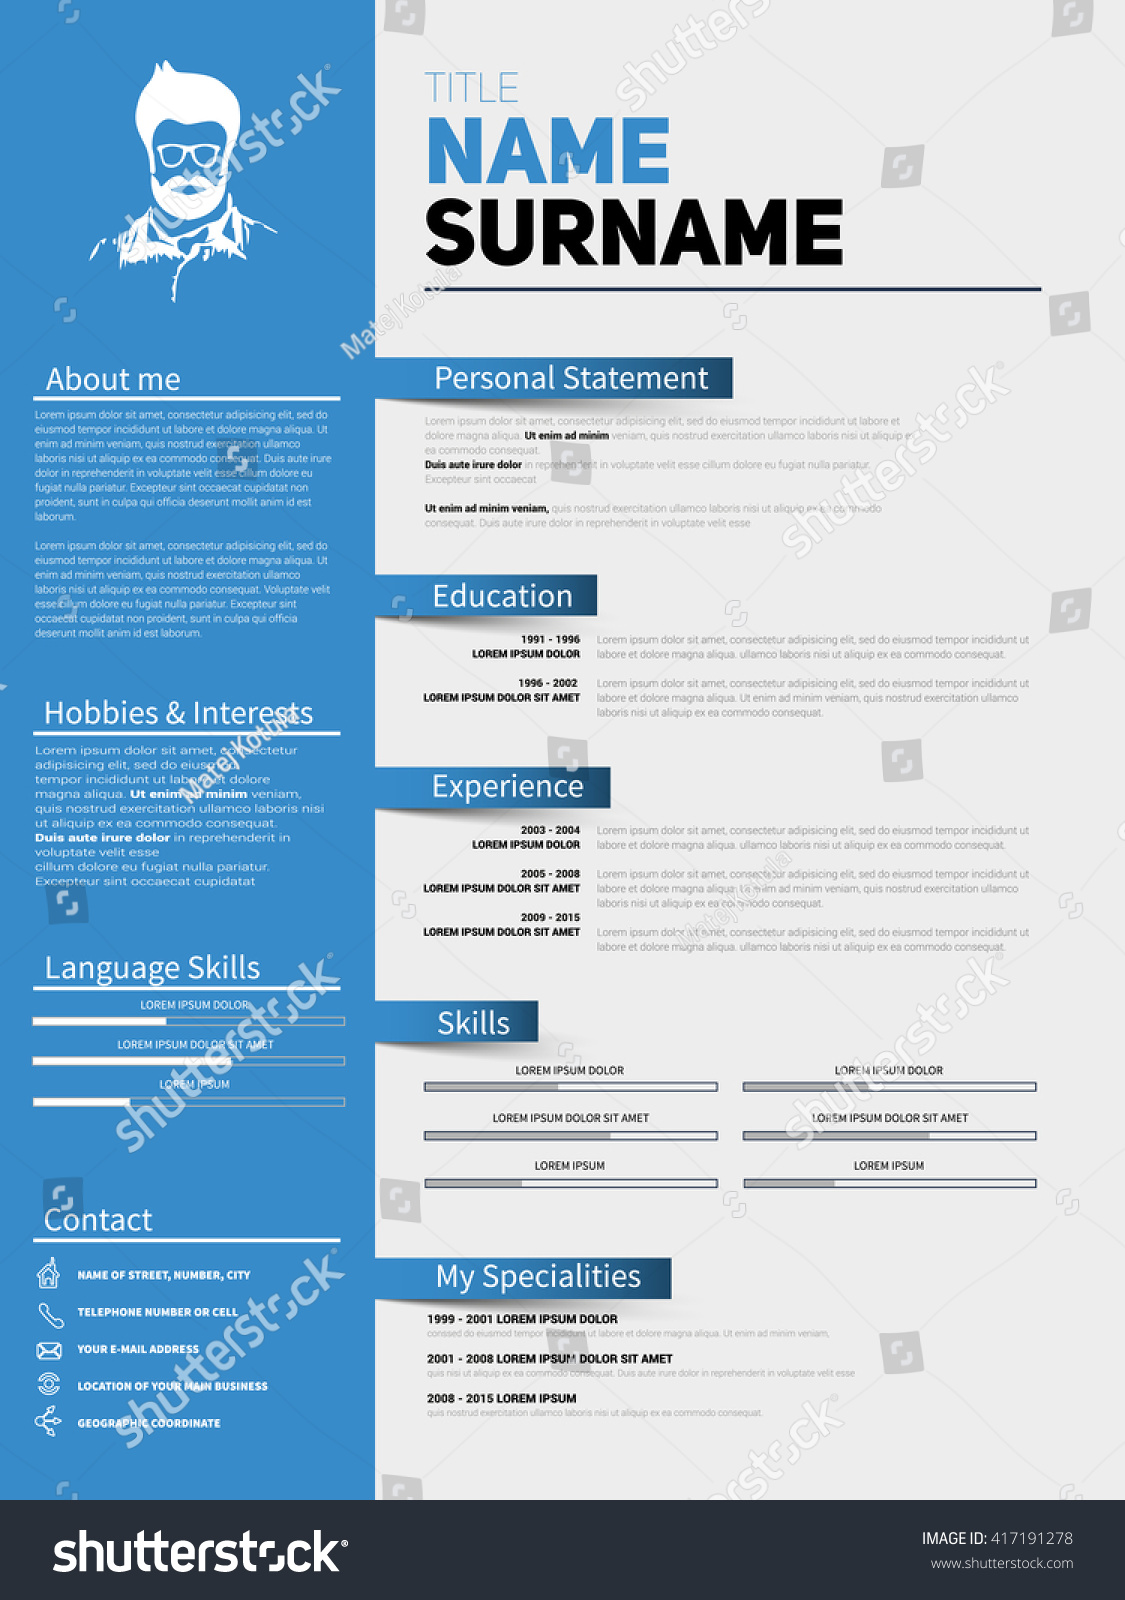 cv layout and information resume samples cv layout and information resume design layouts cv resume template simple design company application